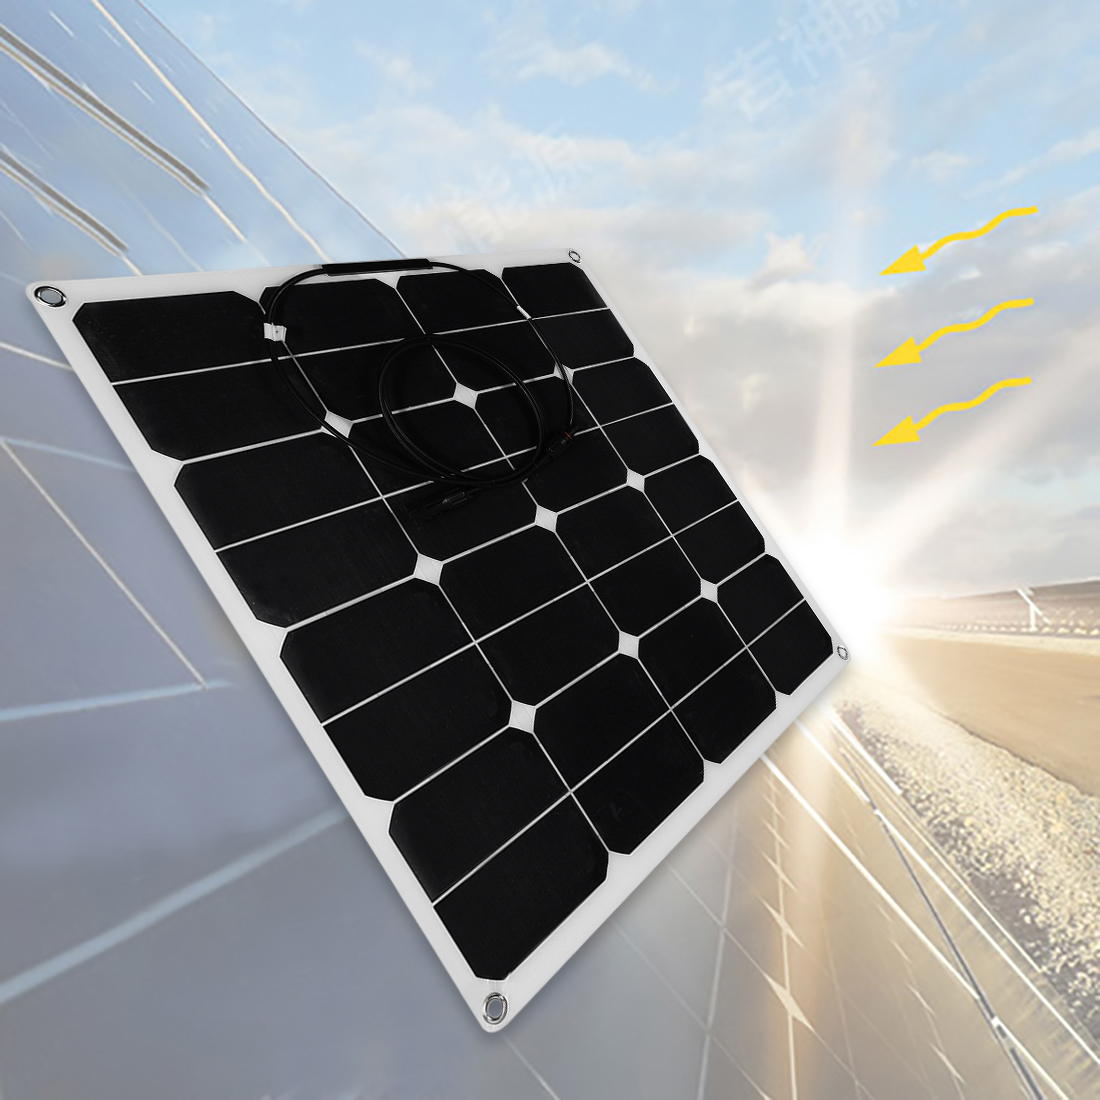 50W Solar Panel Monocrystalline Off Grid 12V RV Marine Boat with MC4 Connector - image 5 de 7